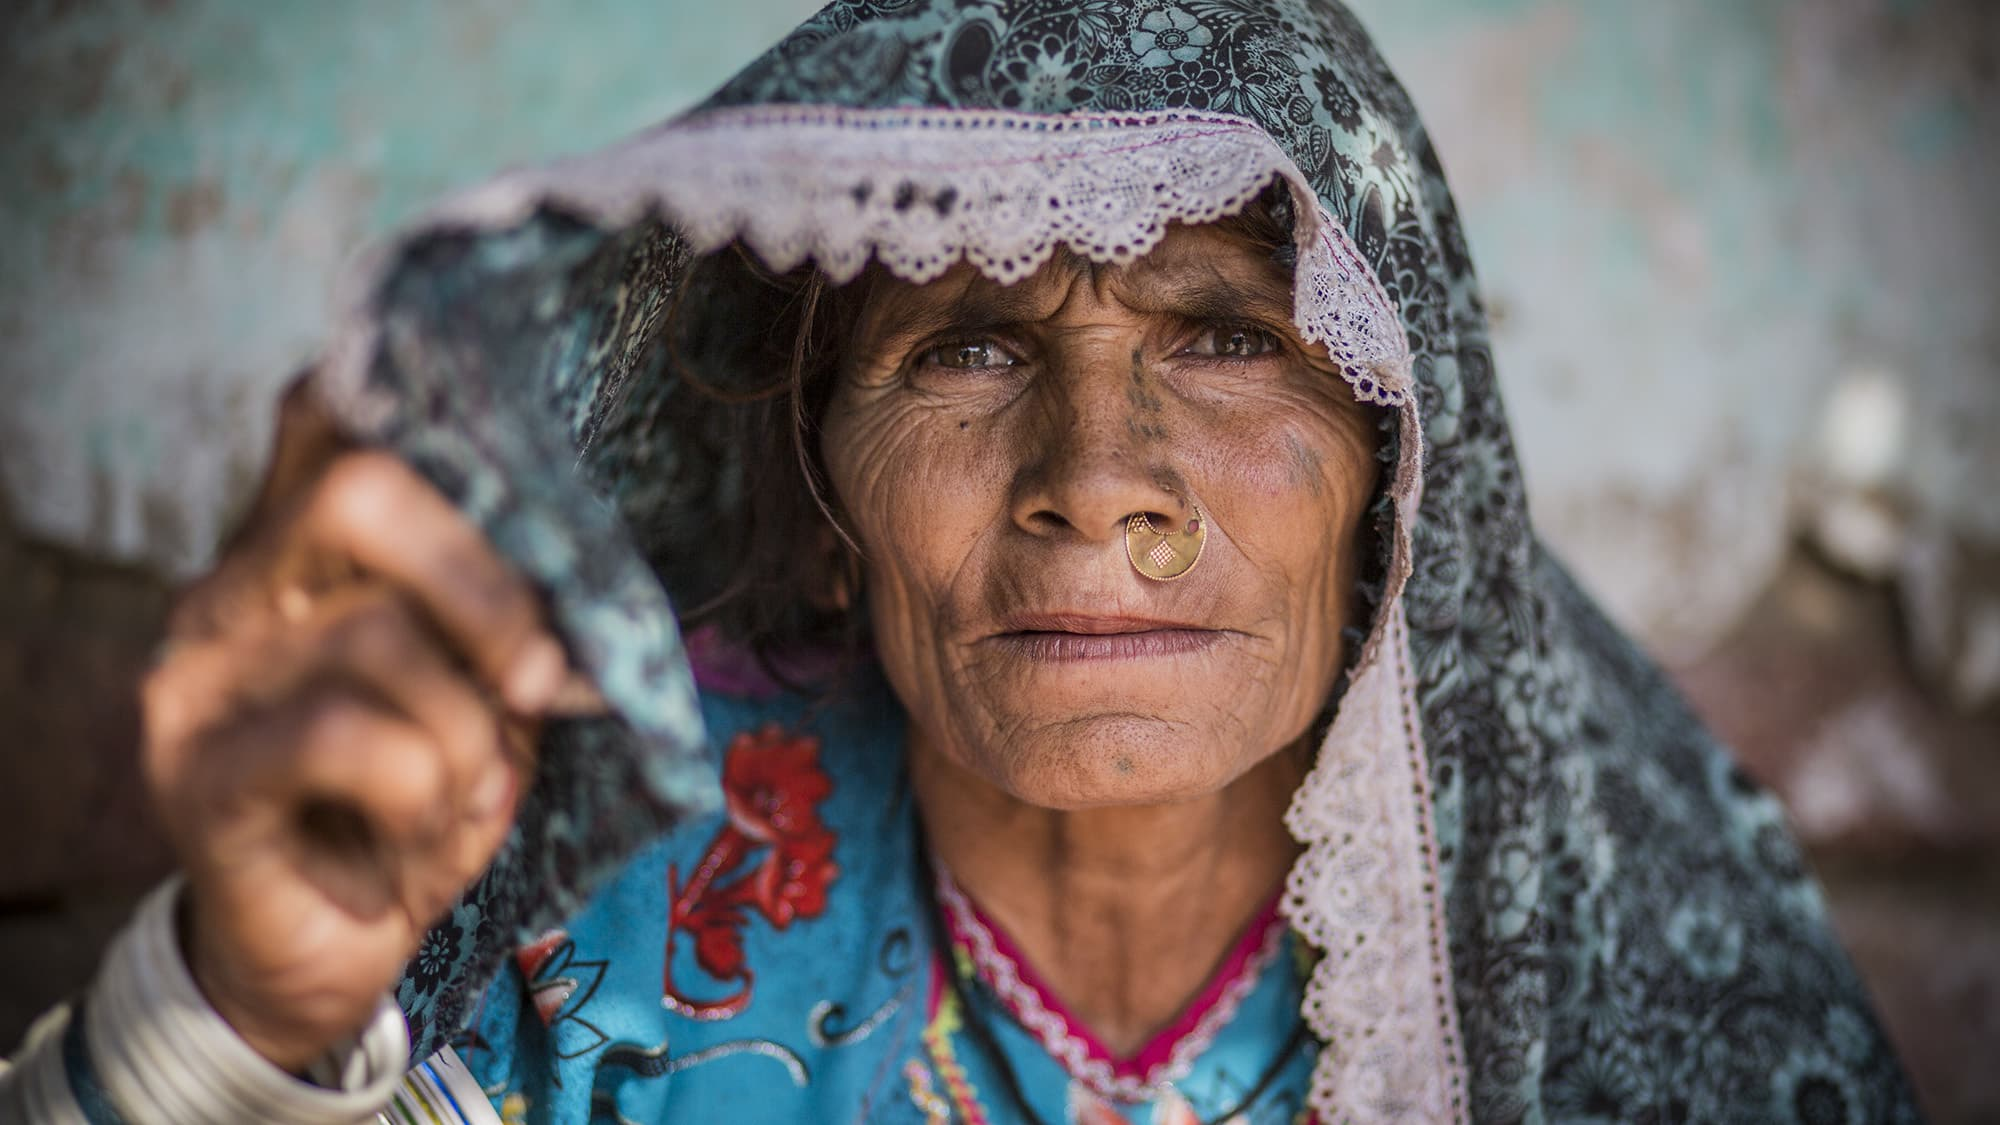 Mai - An old resident of Varshi Kohli village is 70 years old. Her entire village migrated from Nagarparkar to a village in Badin called Varshi Kohli. But here, they face a whole new wrath of climate change. - Photo by Shameen Khan